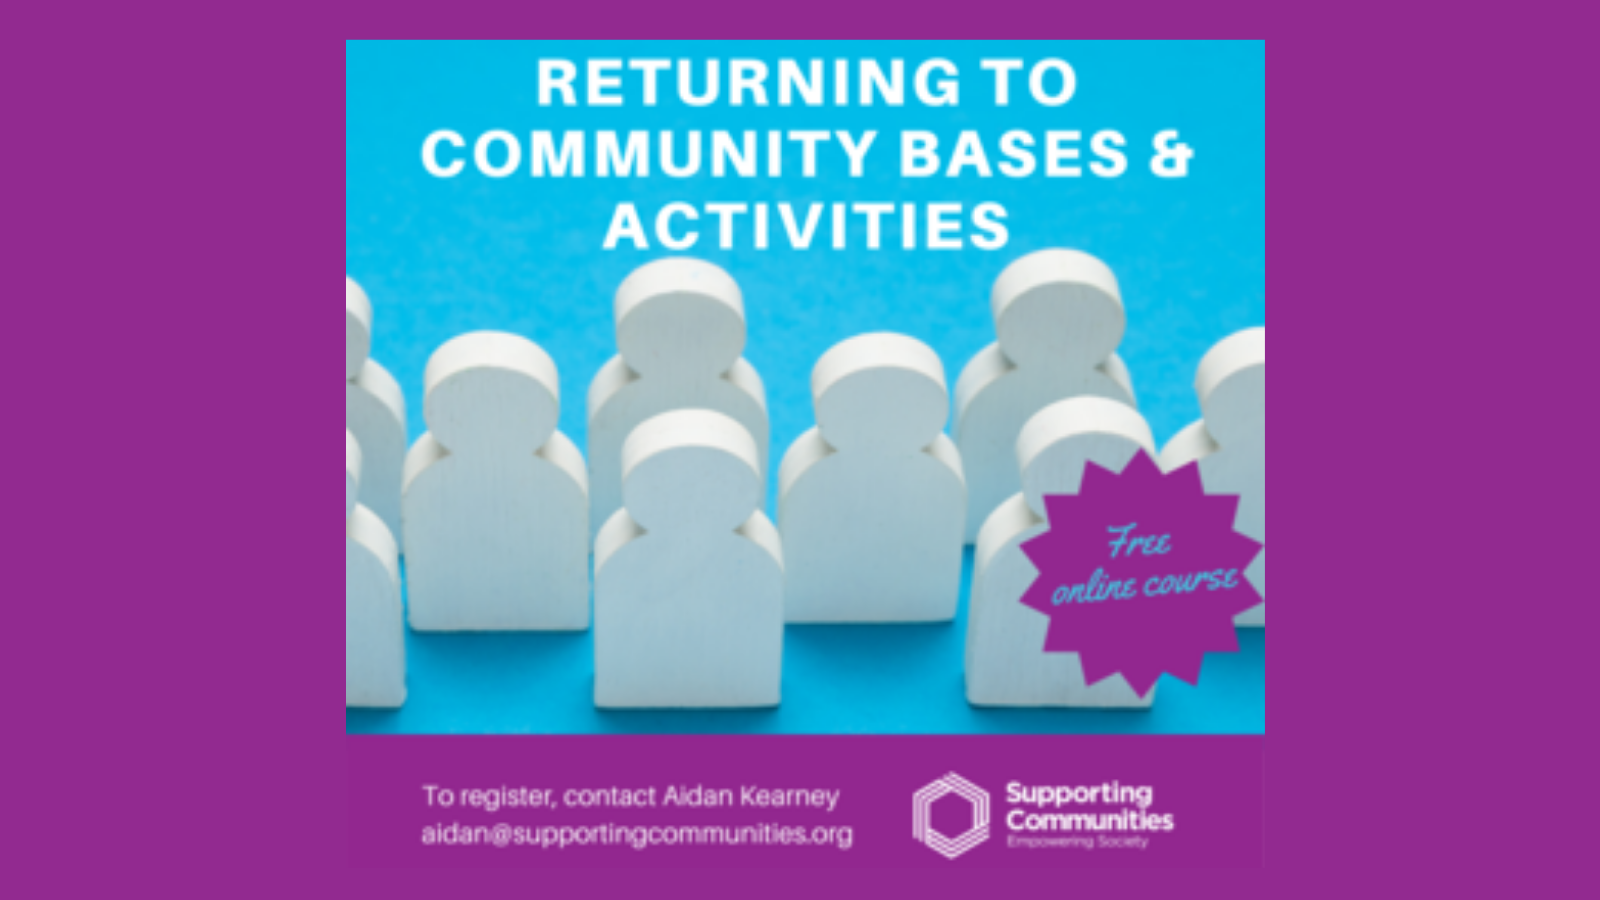 Returning to Community Bases and Activities